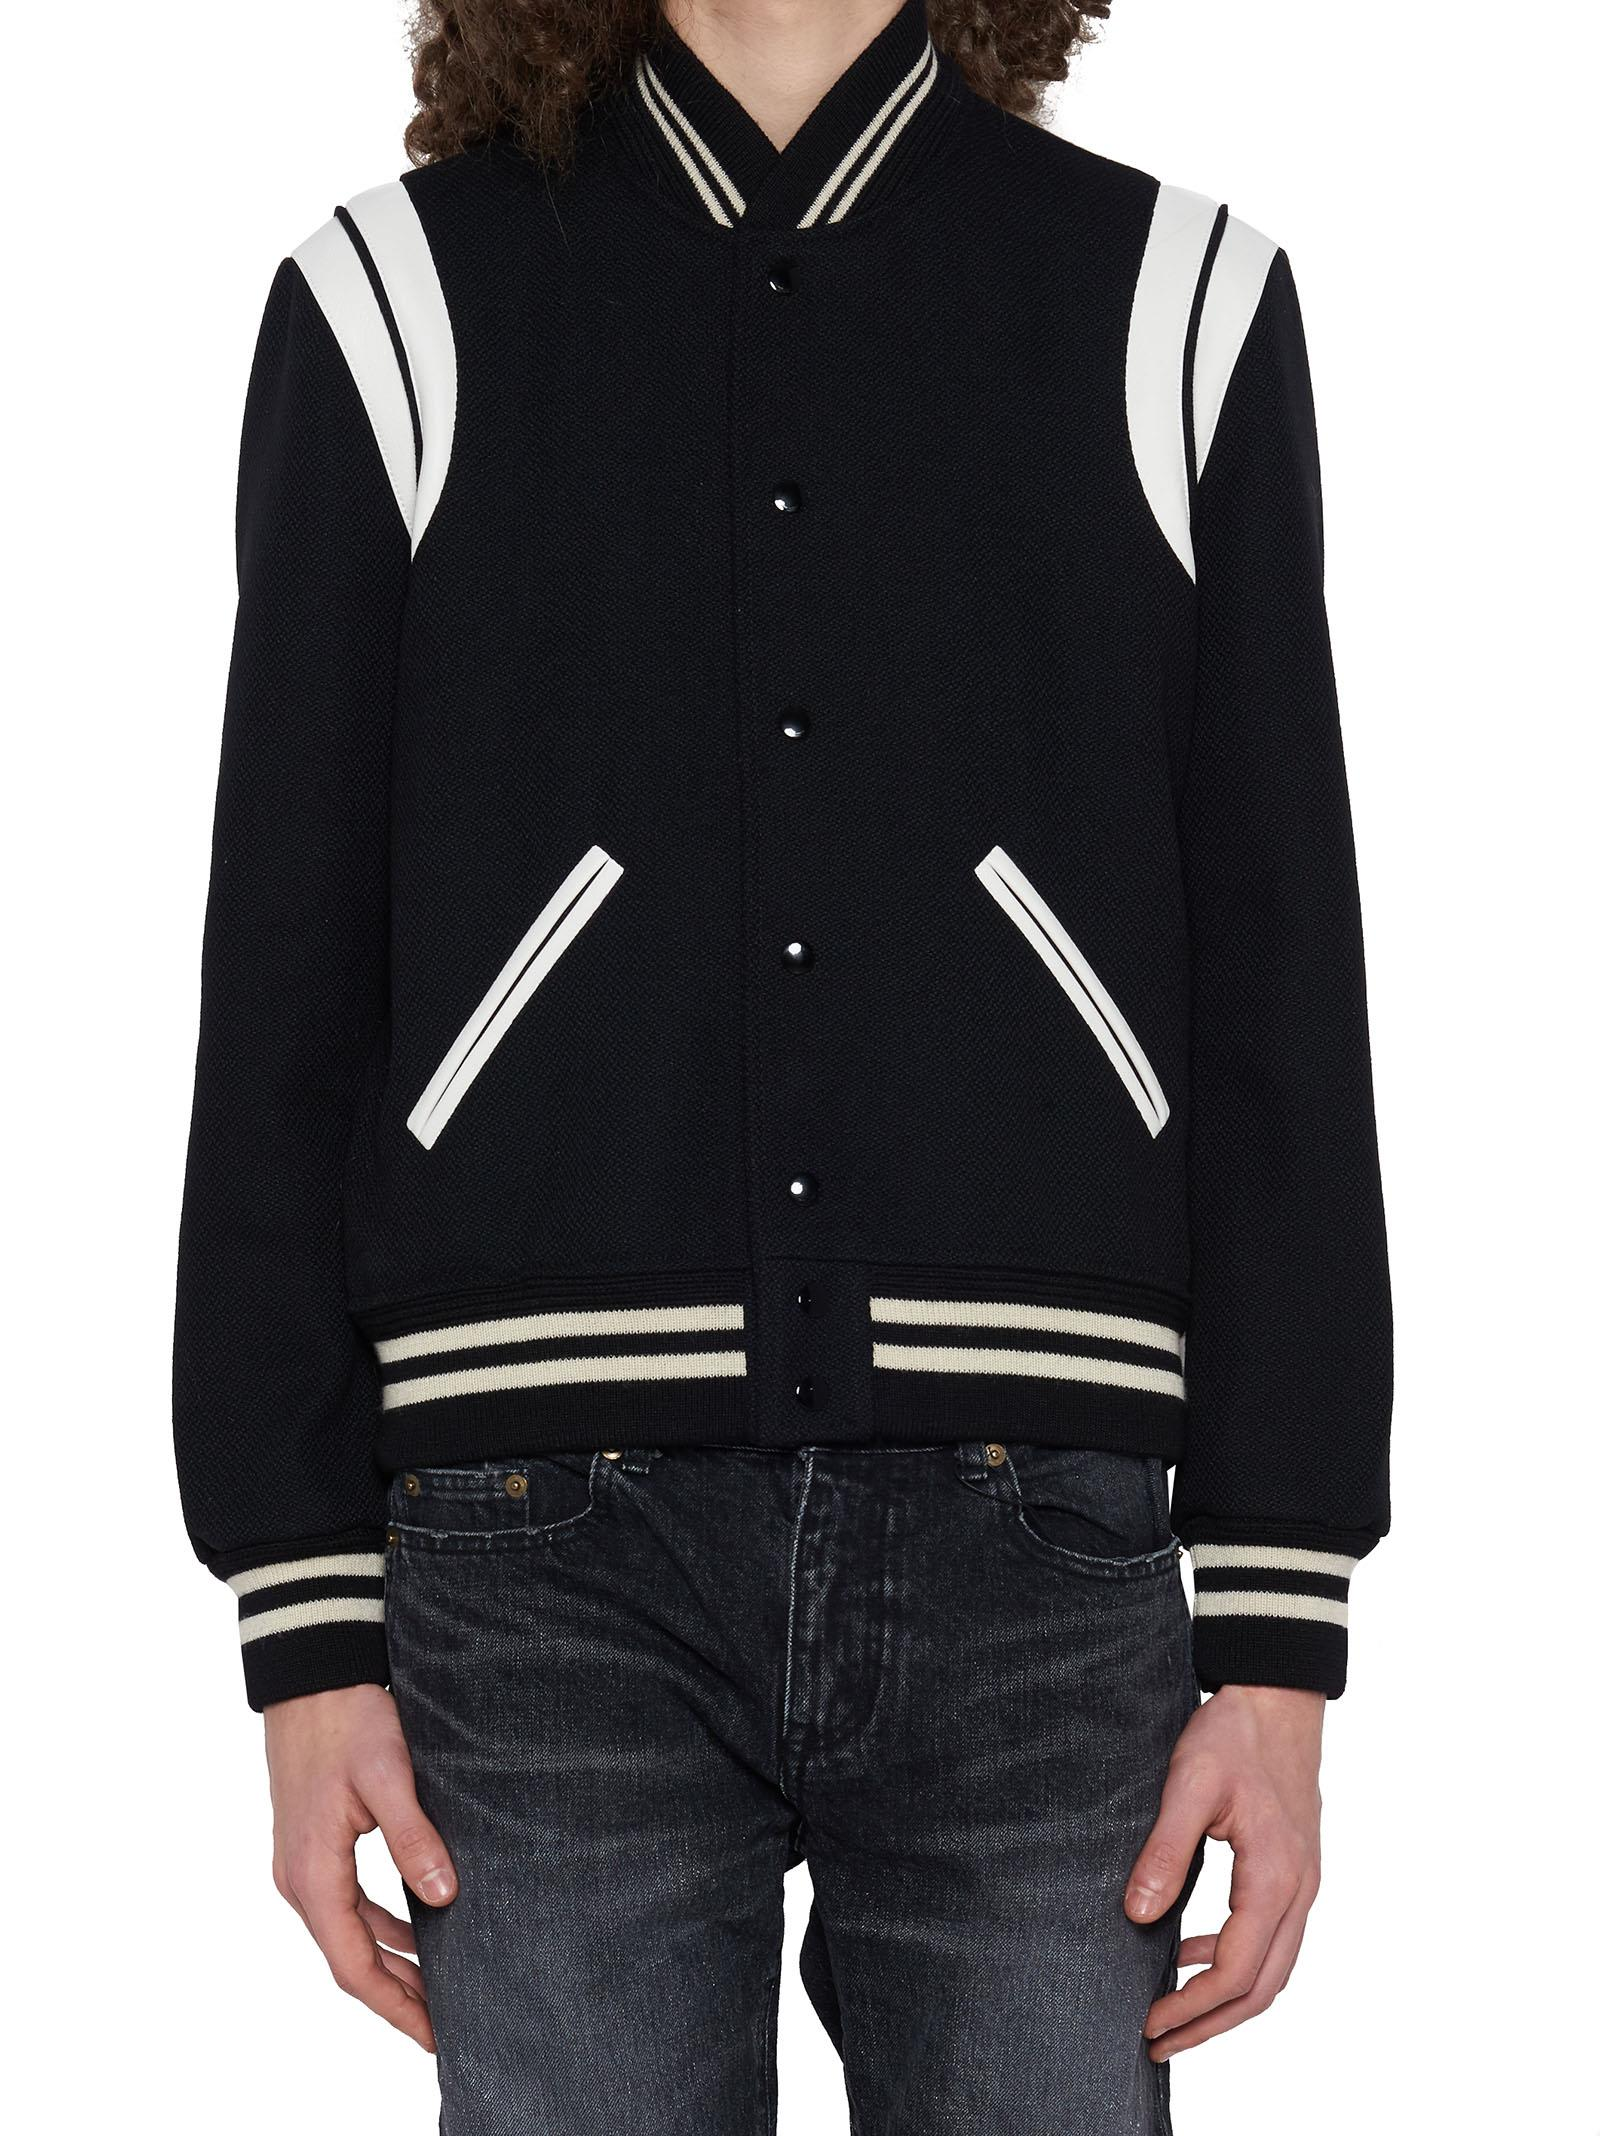 9cbe5a07e72 Saint Laurent Jacket In Black | ModeSens